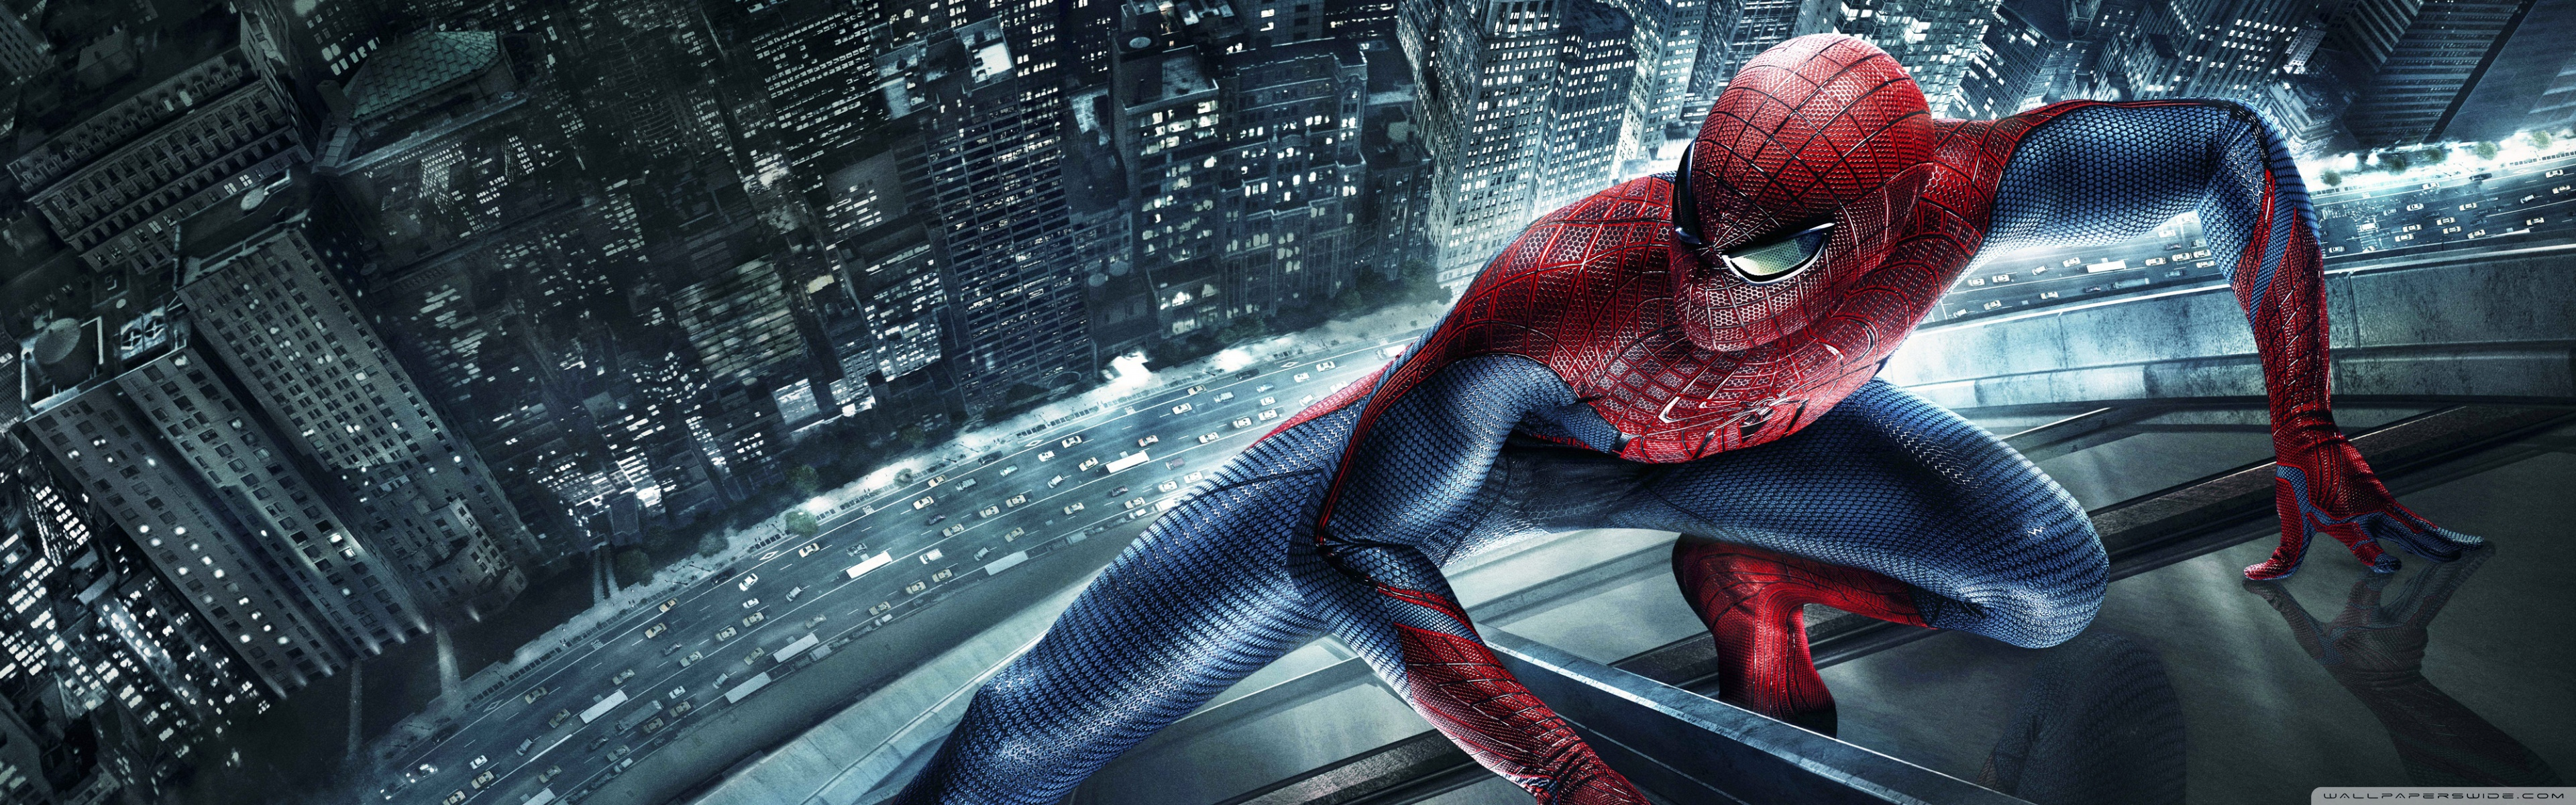 the_amazing_spider_man_2_2017-wallpaper-3840x1200.jpg